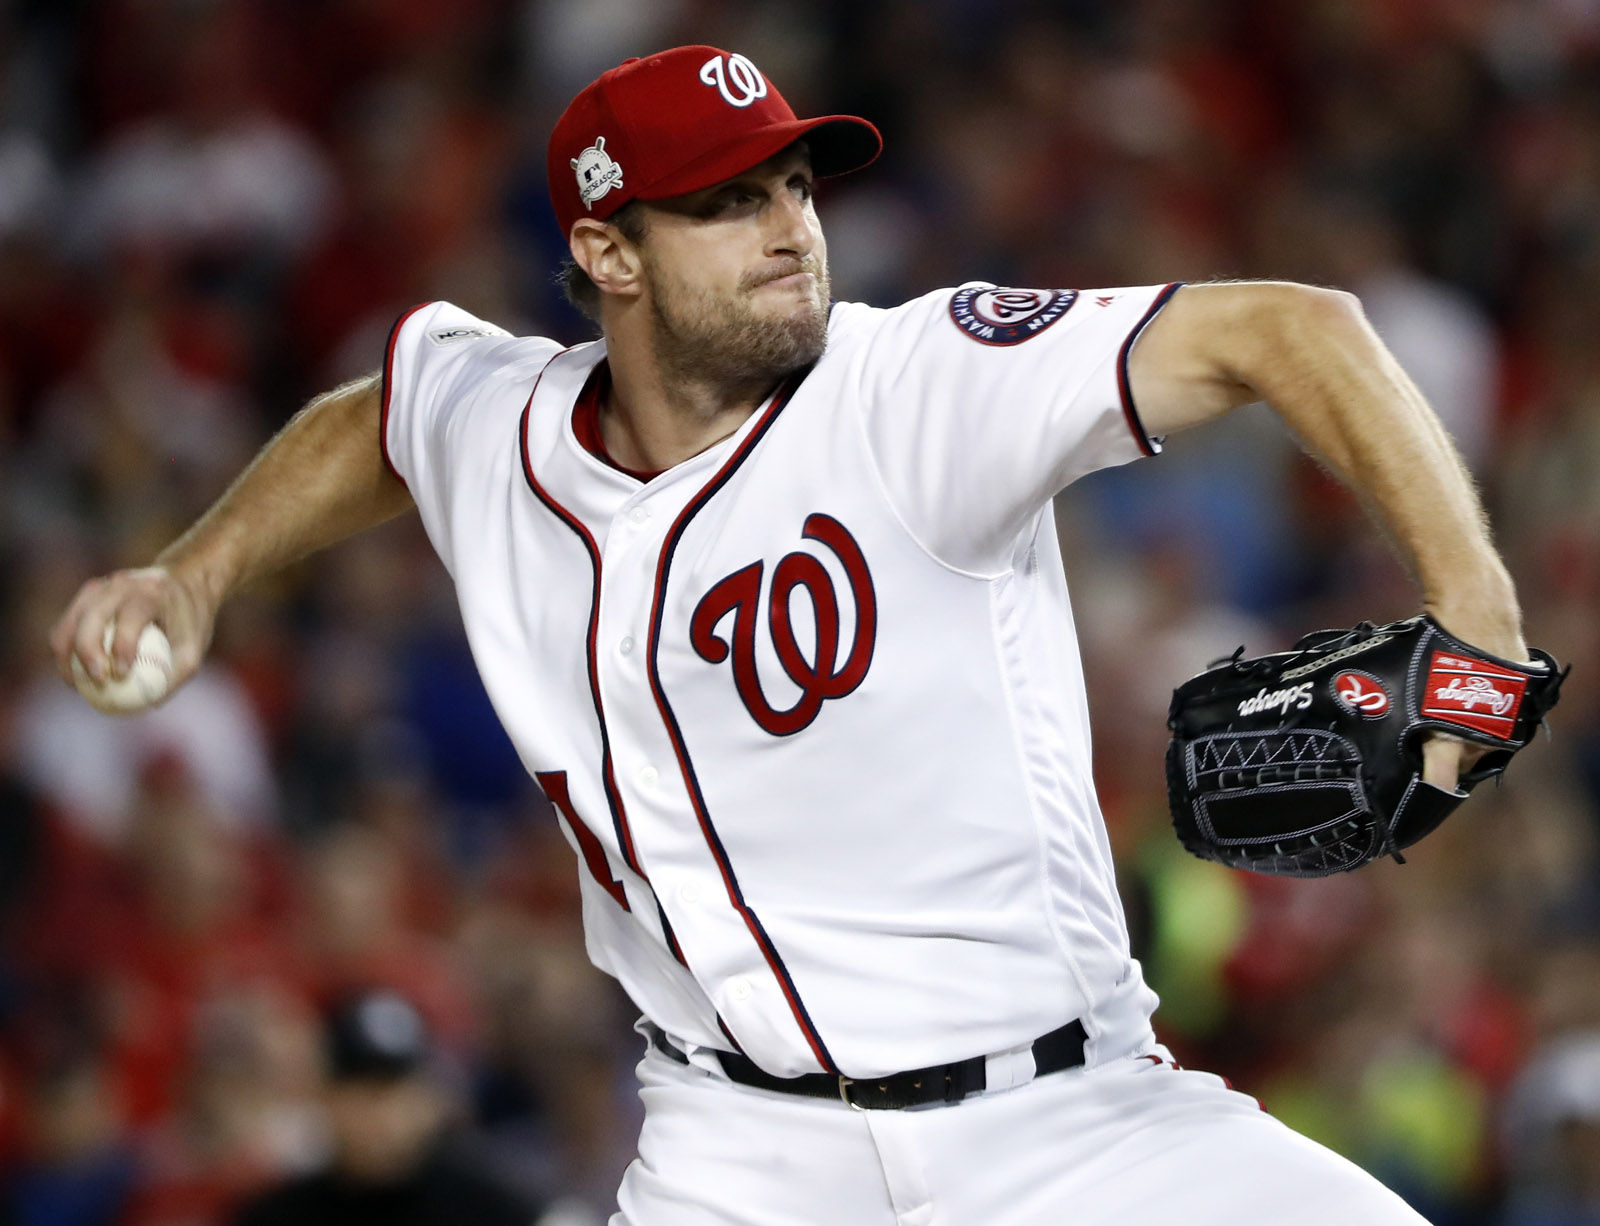 Washington Nationals relief pitcher Max Scherzer (31) throws during the fifth inning in Game 5 of baseball's National League Division Series against the Chicago Cubs, at Nationals Park, Thursday, Oct. 12, 2017, in Washington. (AP Photo/Pablo Martinez Monsivais)